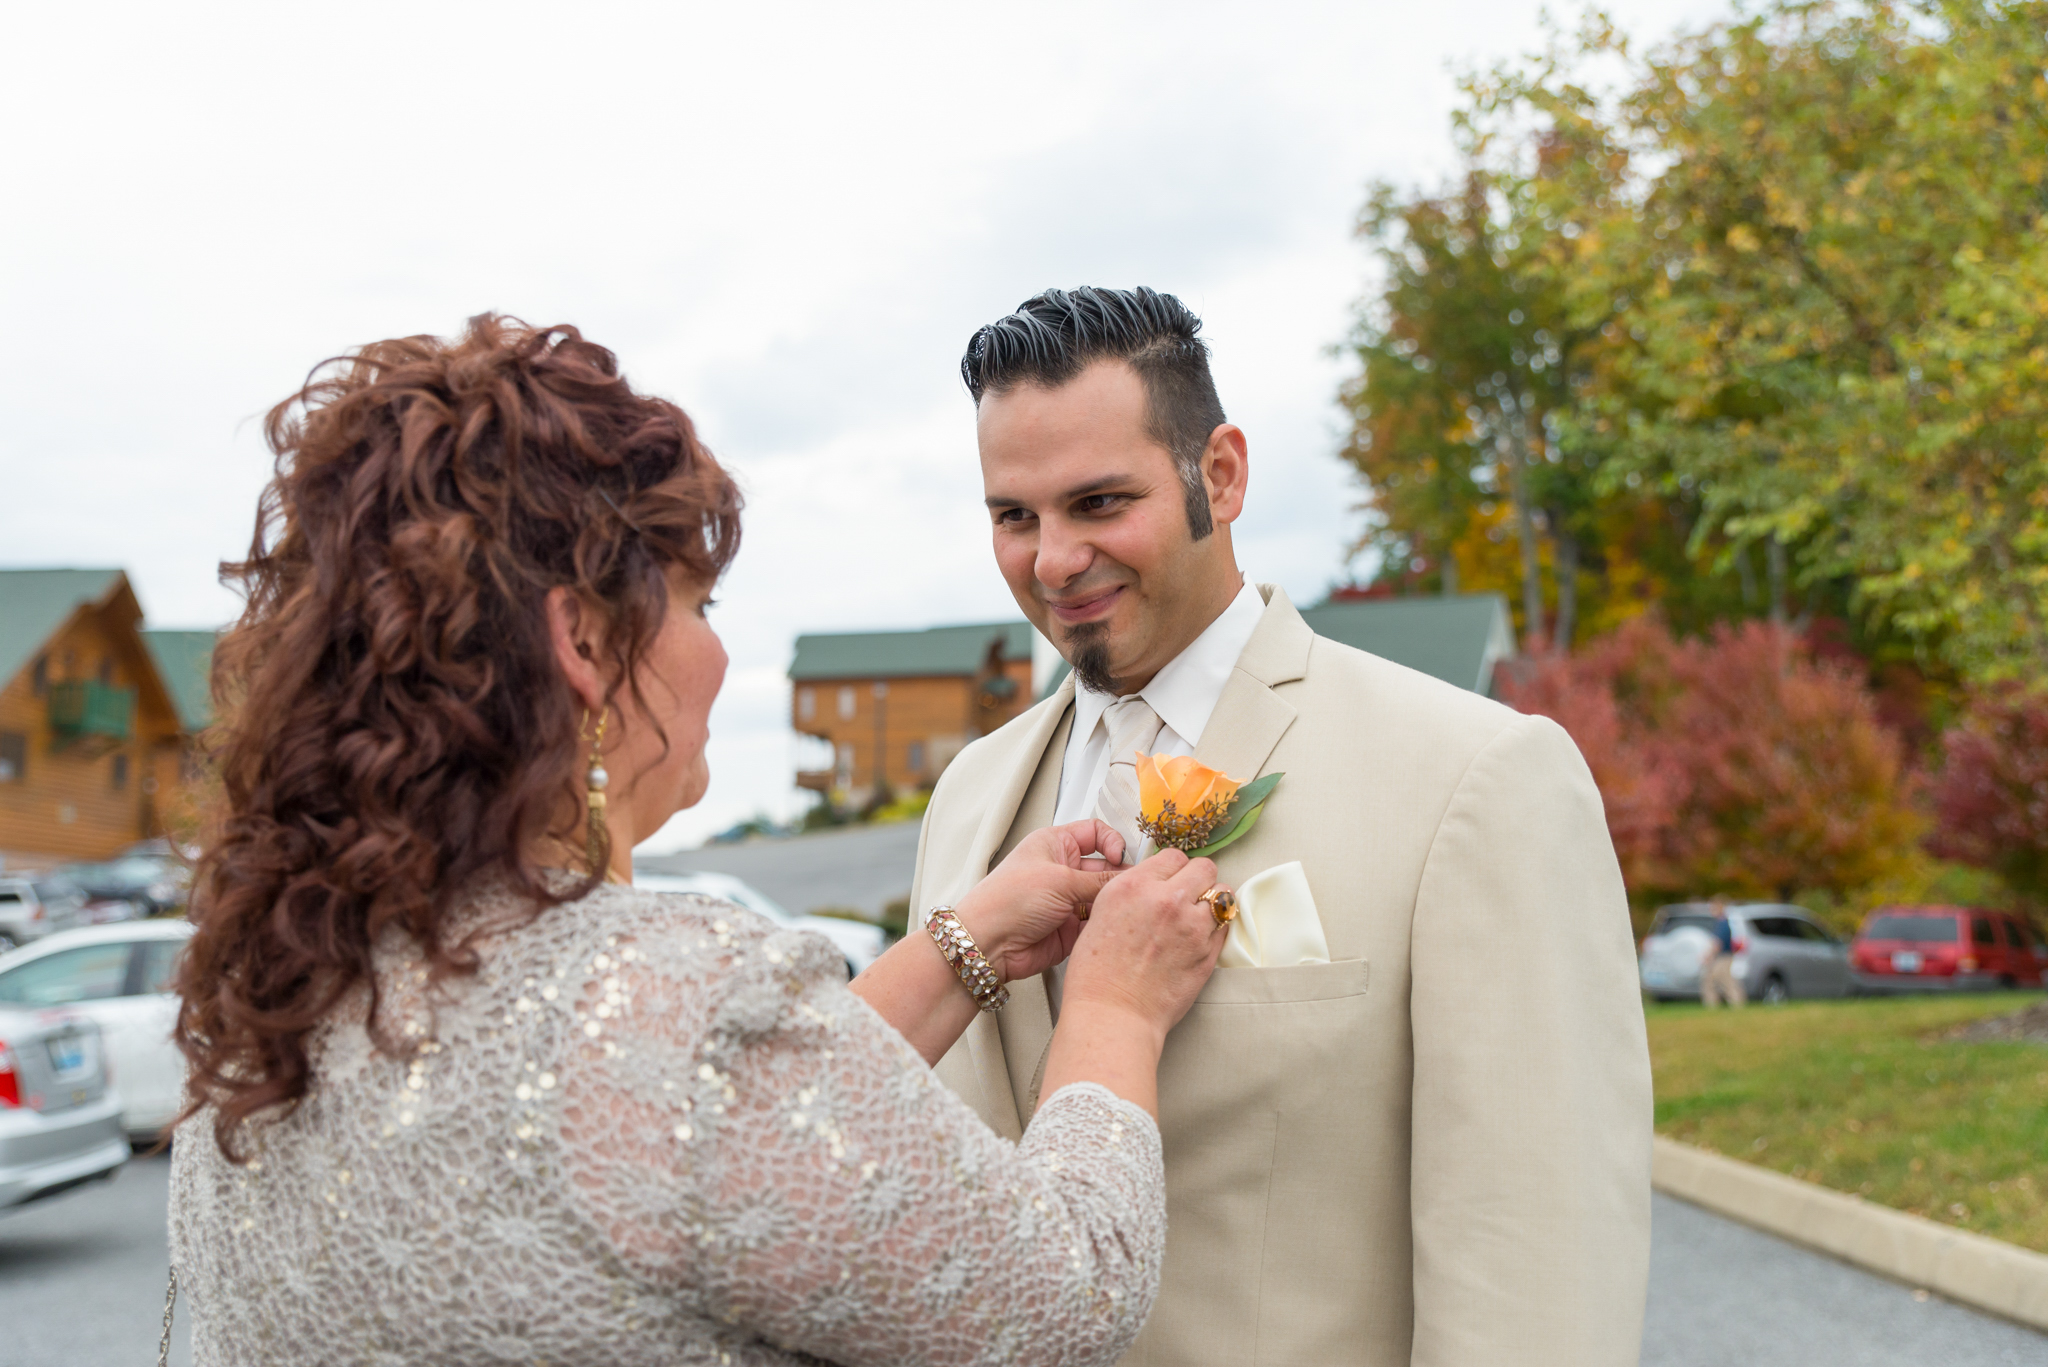 Groom's mother placing his boutonniere